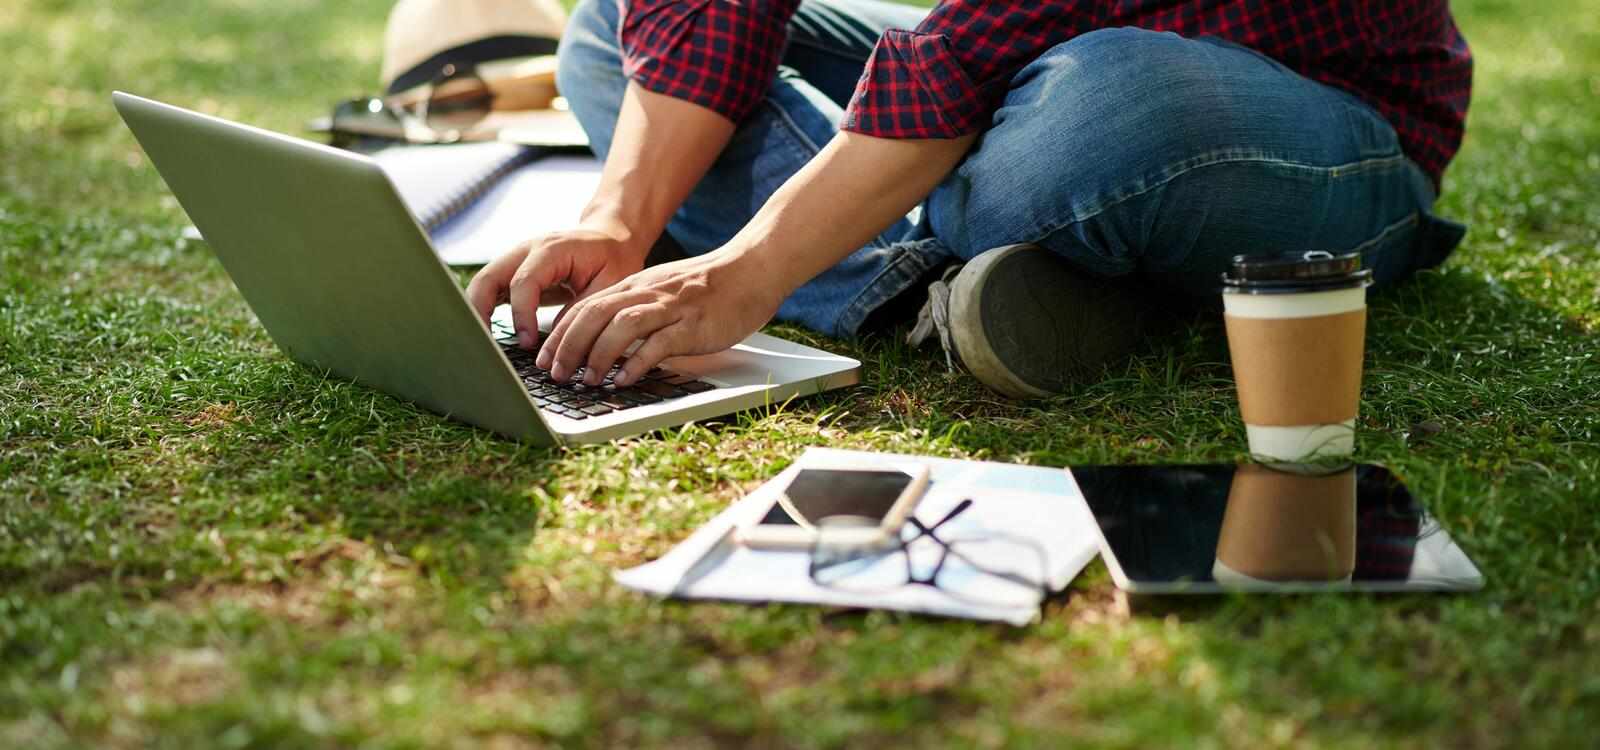 Sitting on the grass, a student types on his laptop as his coffee, tablet, notebooks and phone surround him